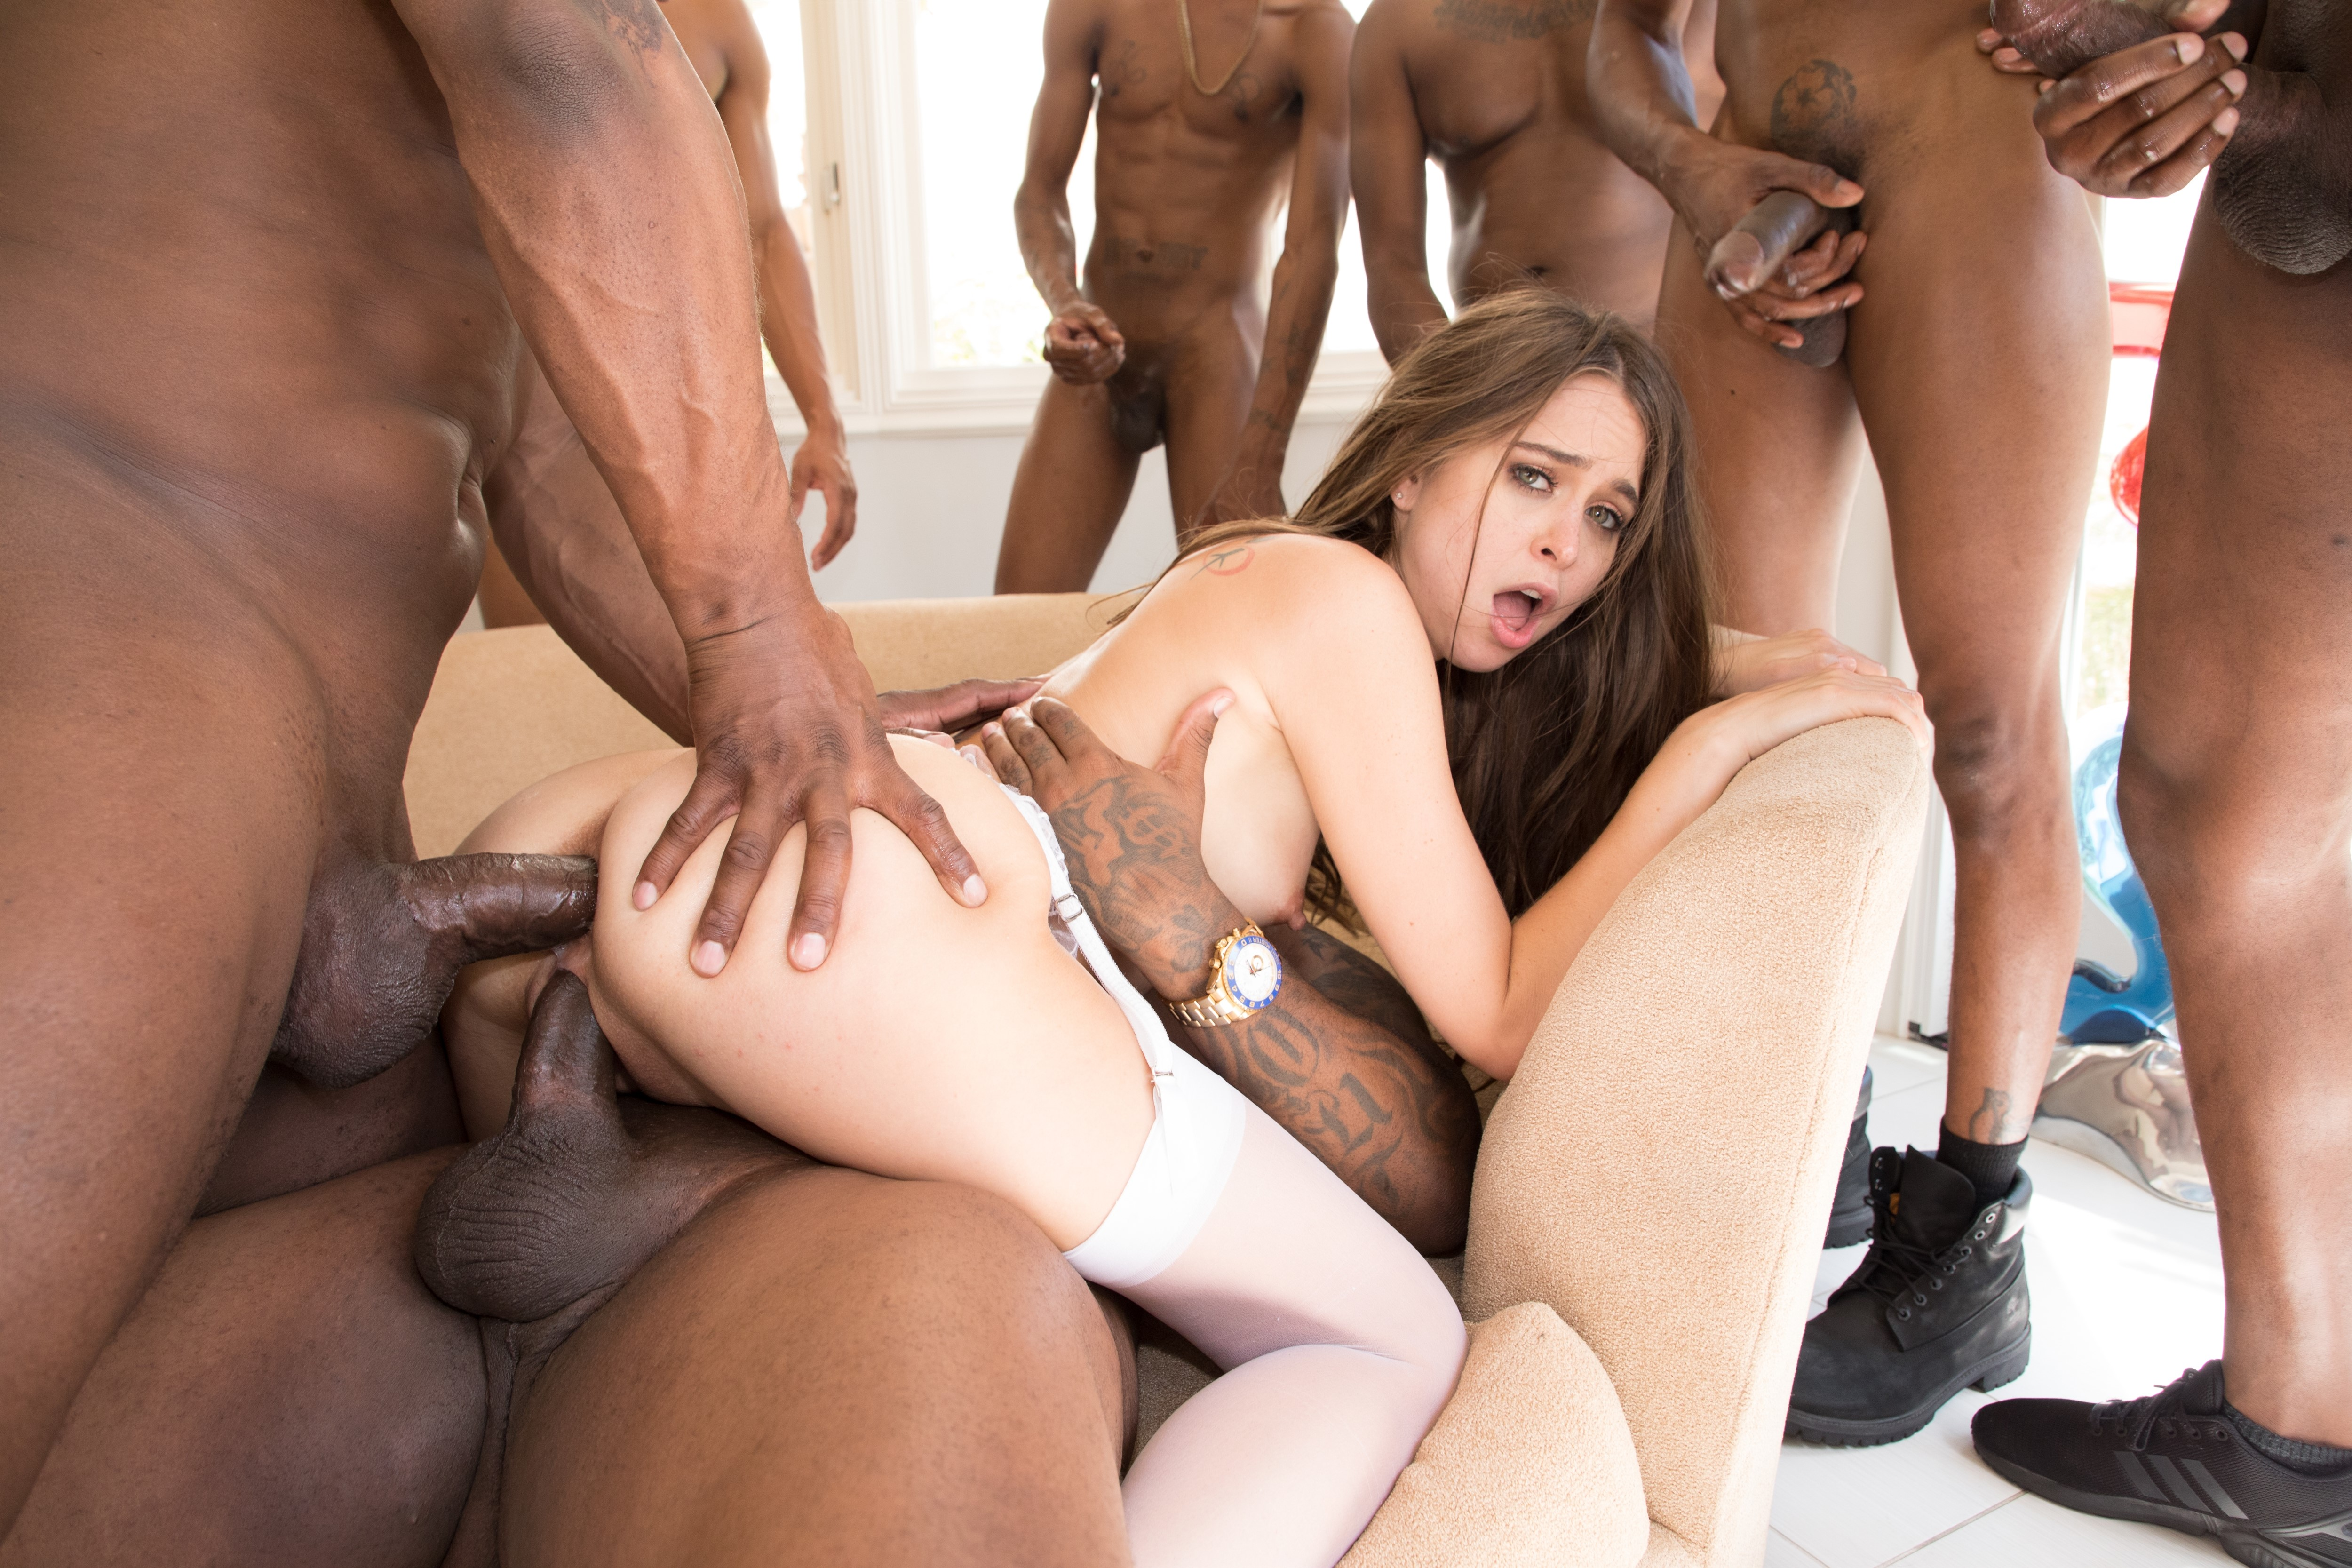 Seductive japanese thrills with blowjob during gangbang high quality porn photo